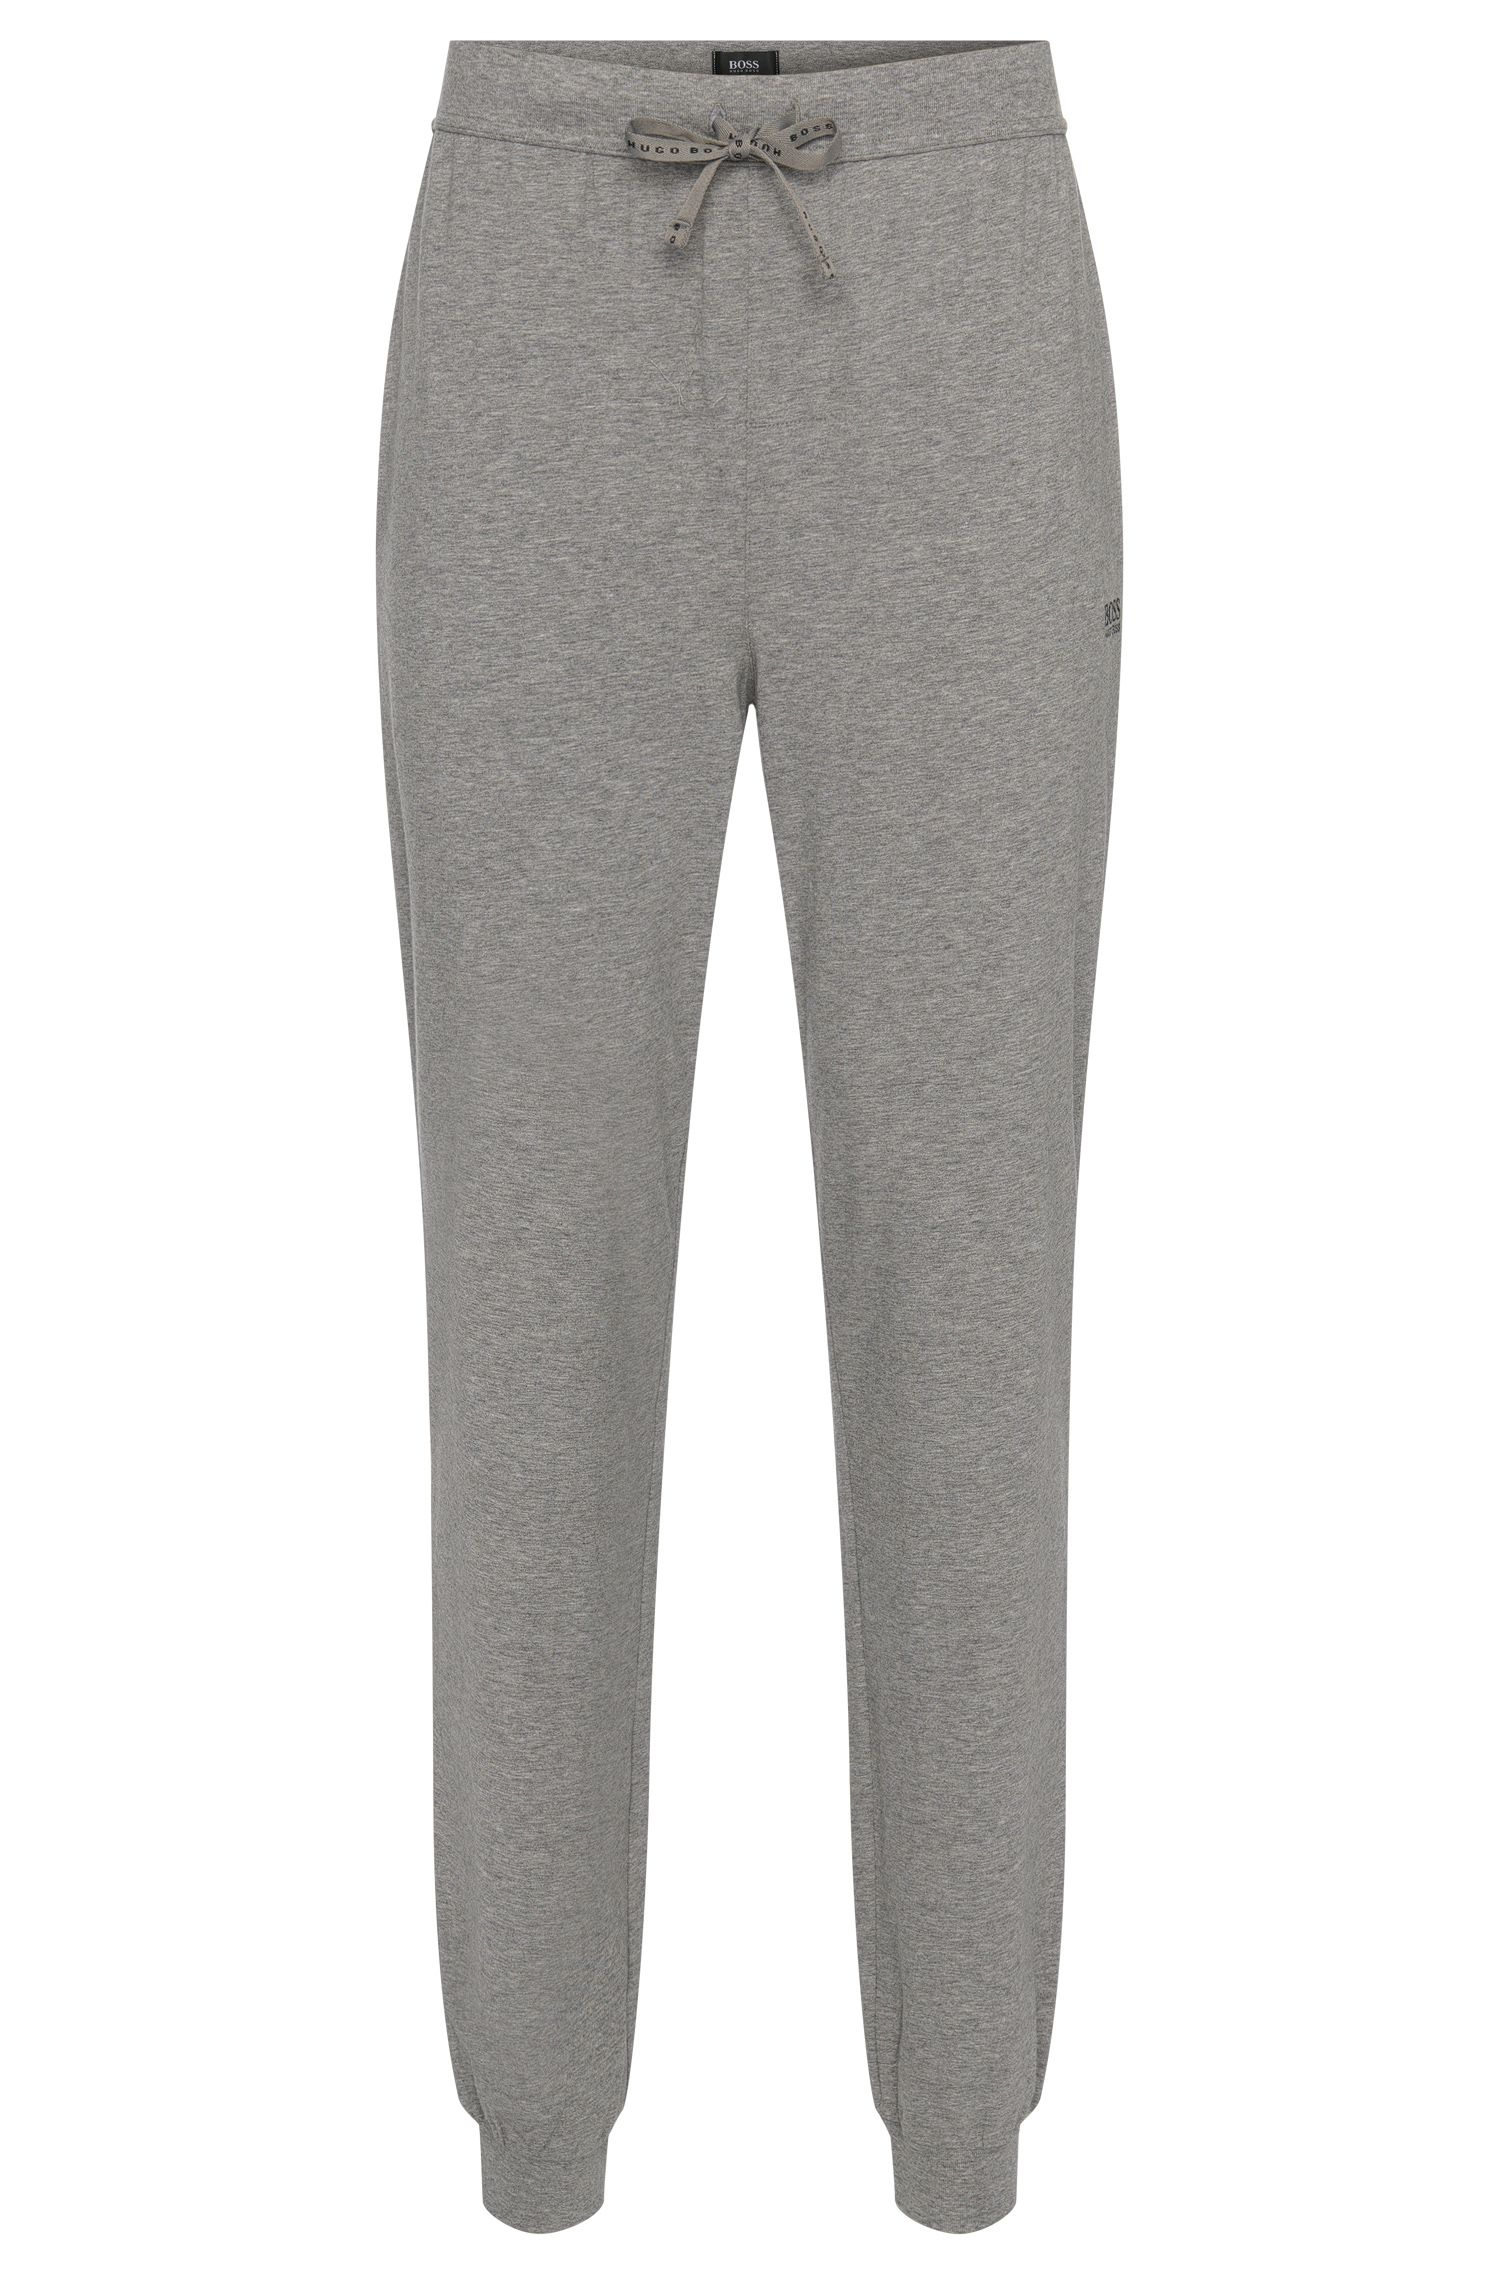 Pantalon sweat en coton stretch avec cordon de serrage : « Long Pant CW Cuffs »